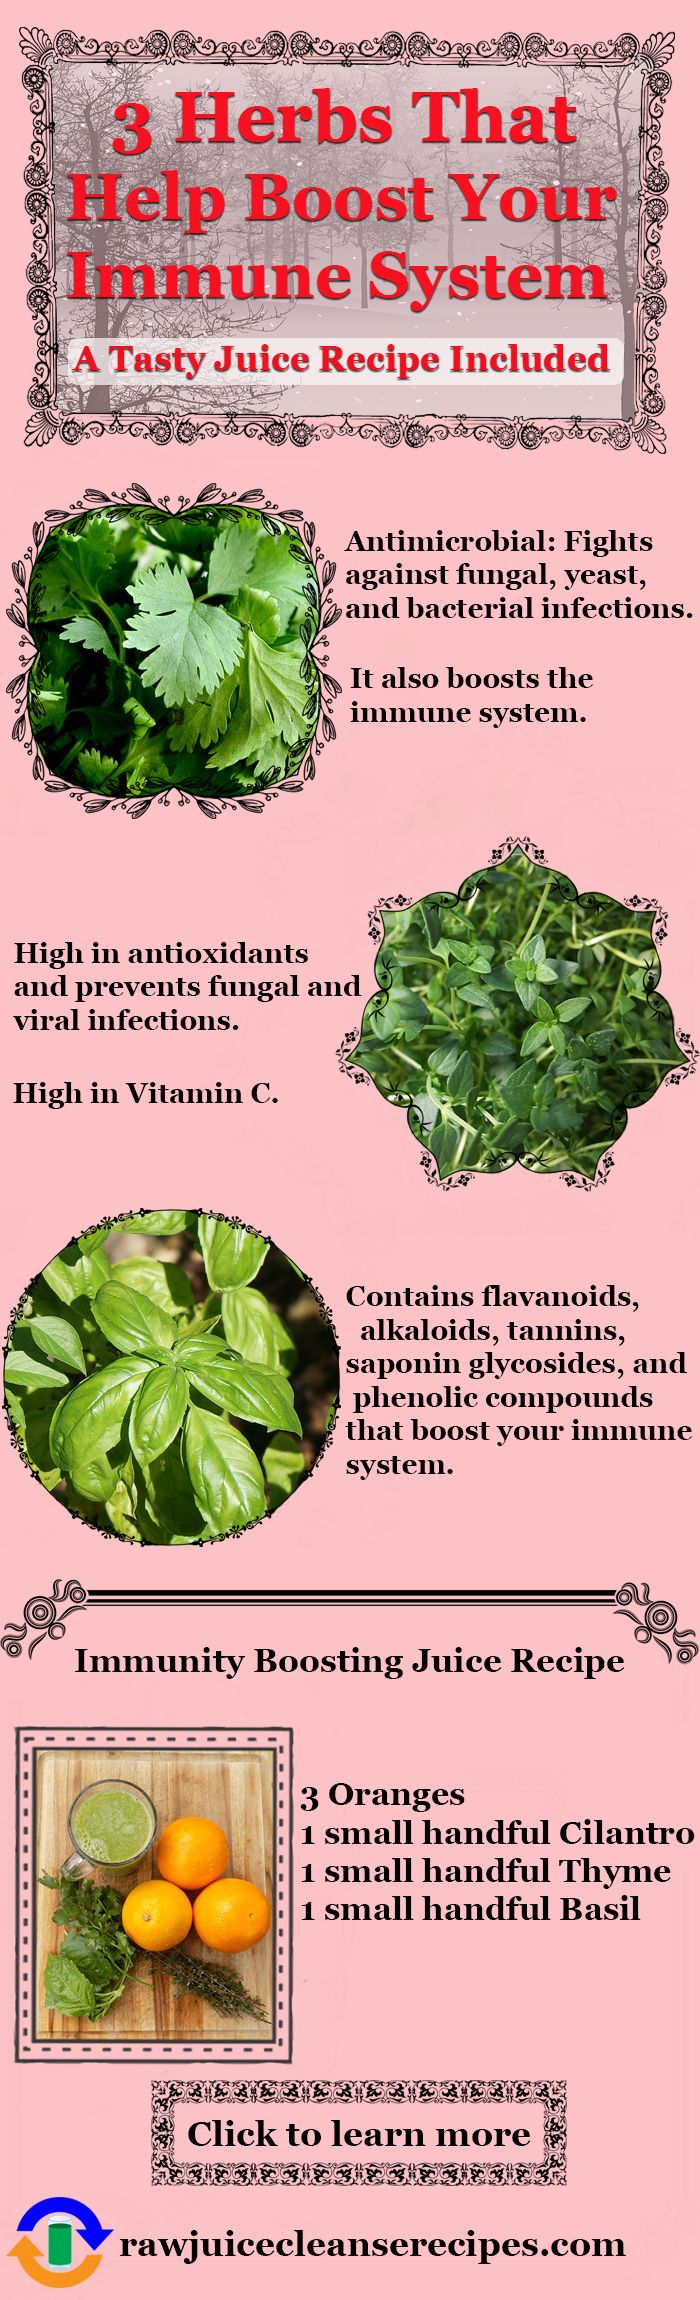 3 Herbs That Help Boost Your Immune System: A powerful herbal immunity boosting juice recipe included. It tastes so good, too!